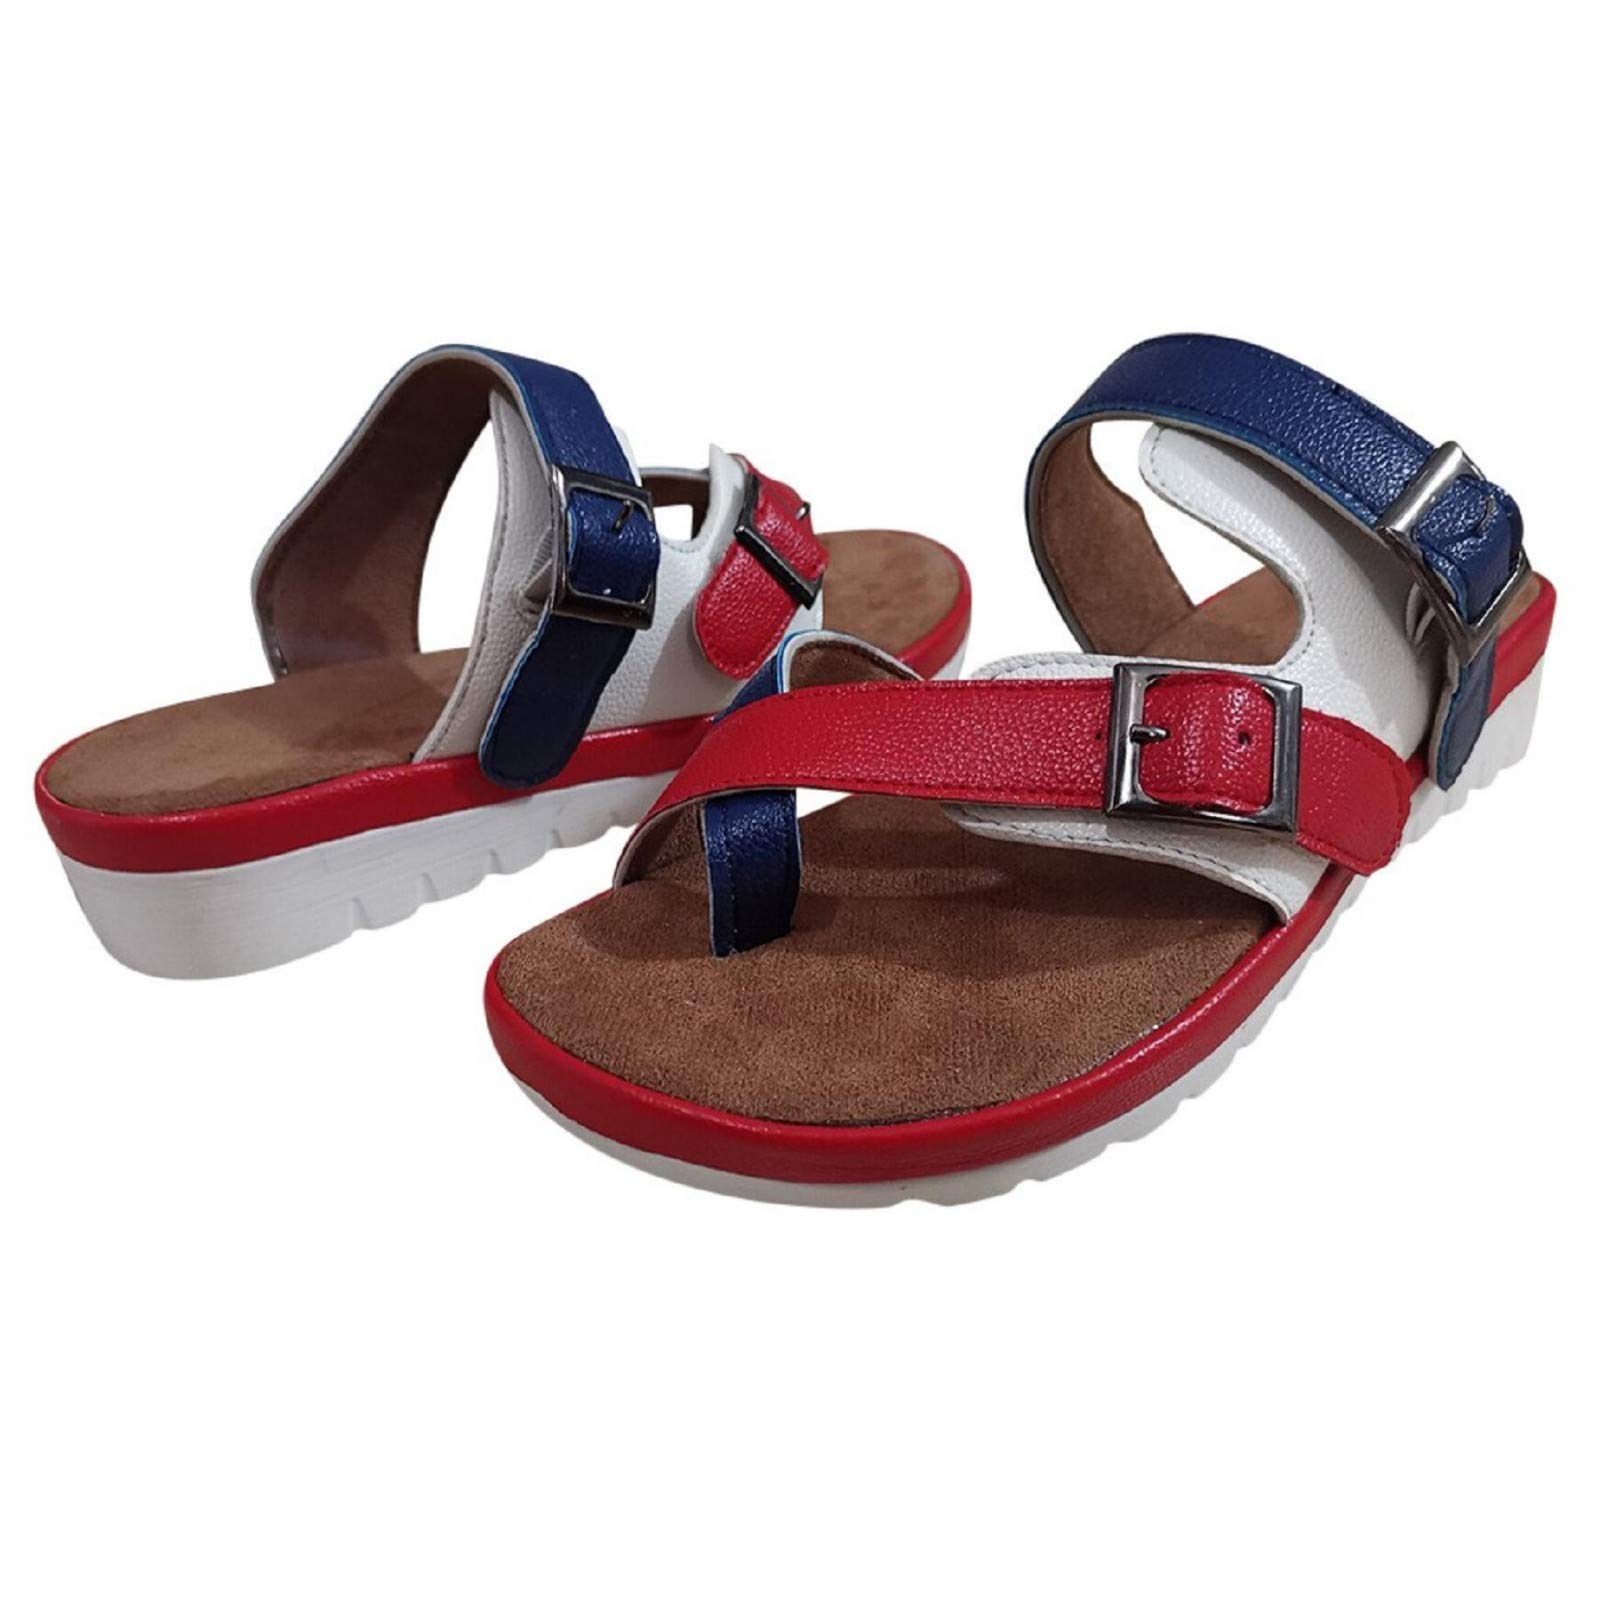 Women's Flat Casual Home Walking Sandals, Comfortable Cork Comfy Platform Summer Beach Water Slippers Flip Flops Red